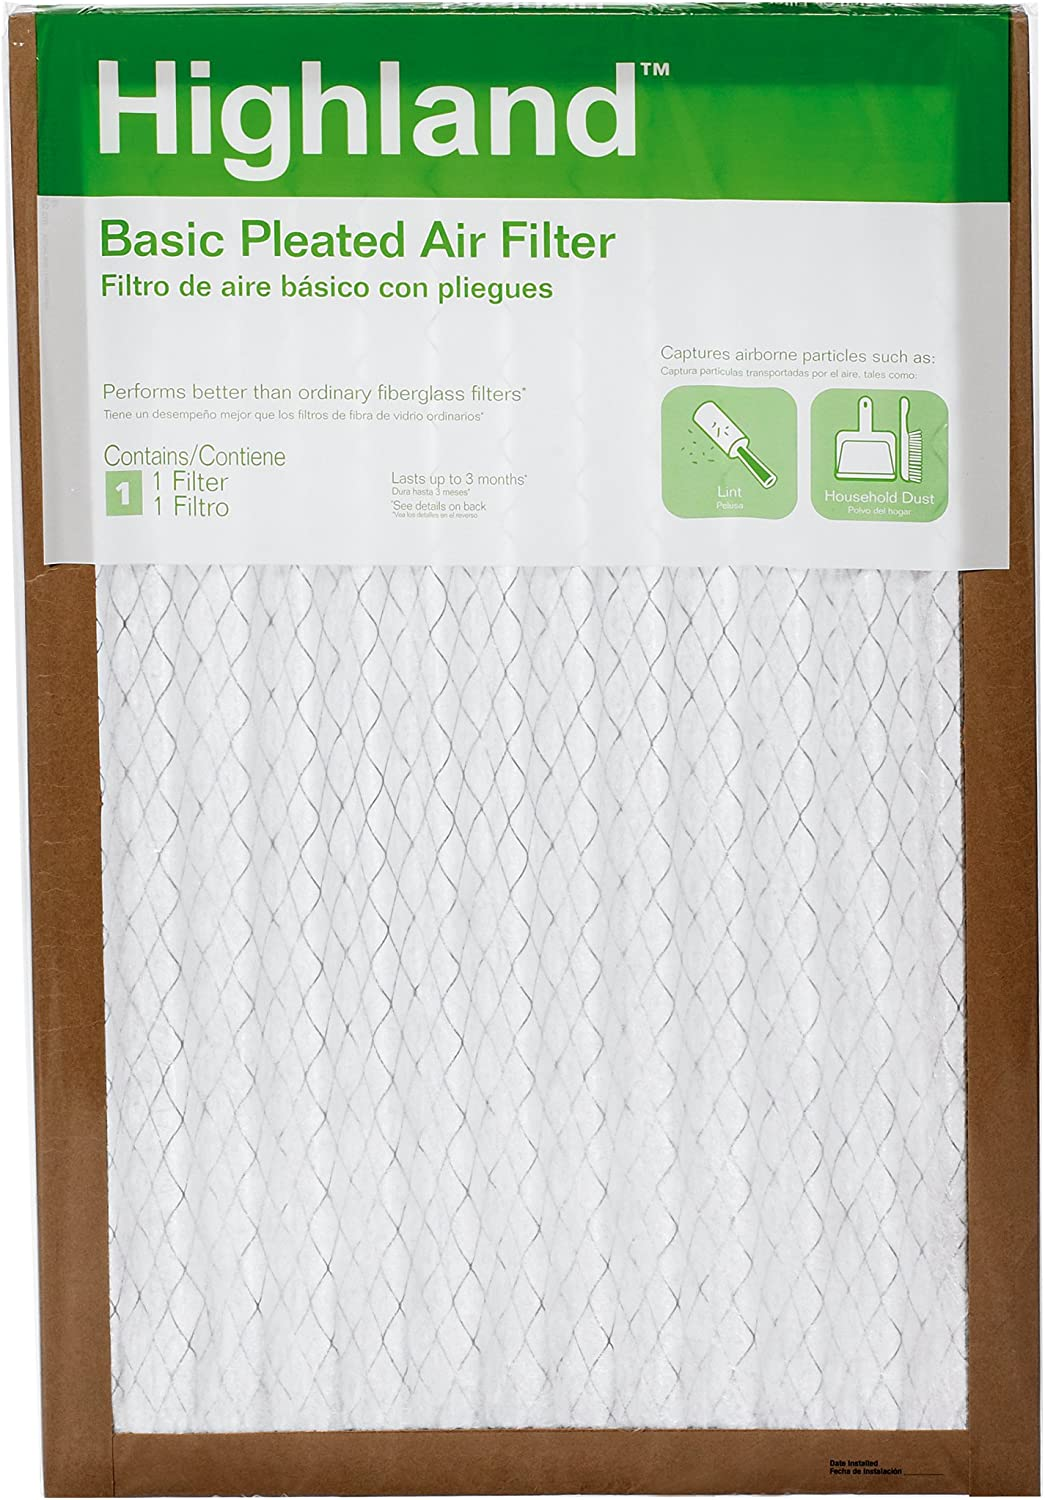 3M FBA25DC-6 Highland Fashion OFFicial site Trade Basic Pleated Air Filter 16